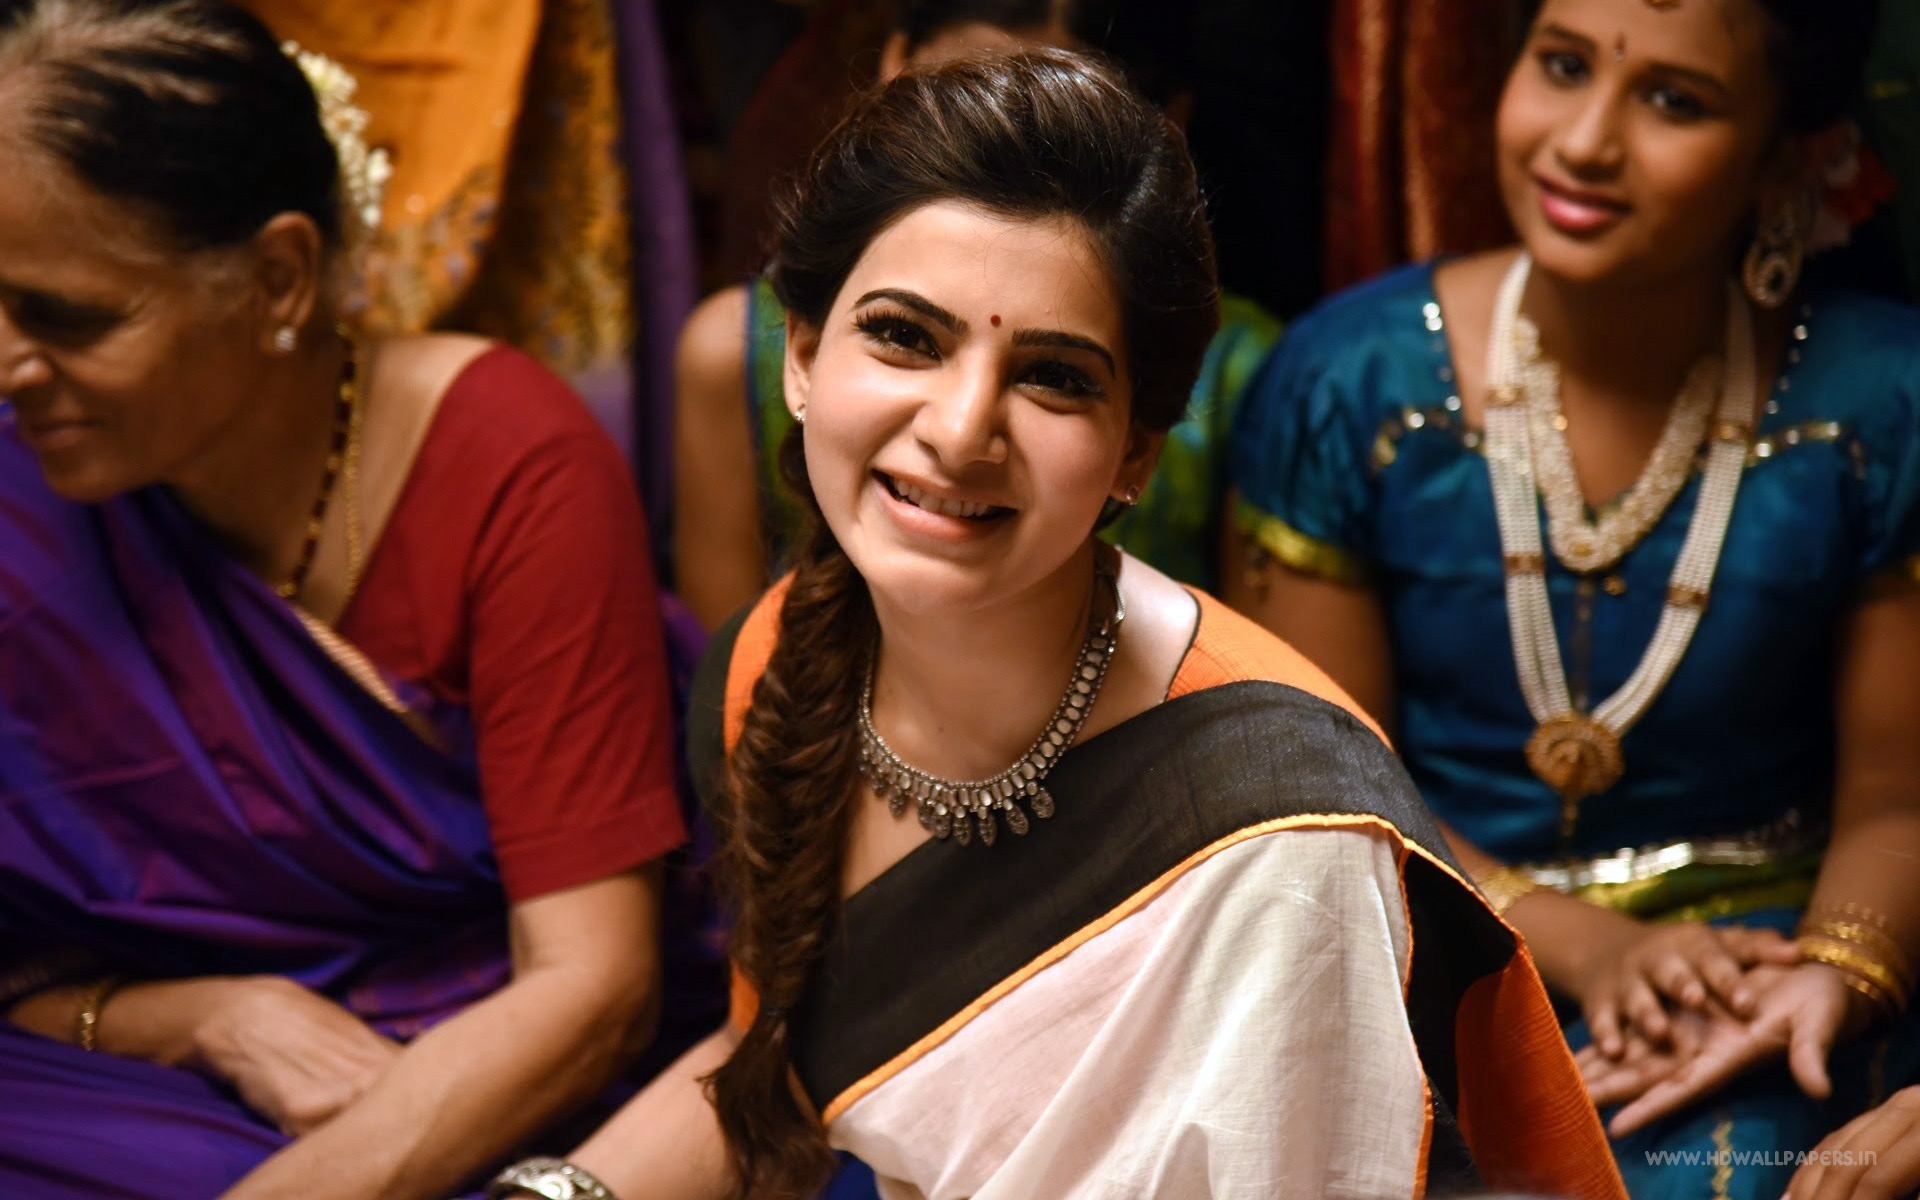 samantha tamil movie actress wallpapers in jpg format for free download